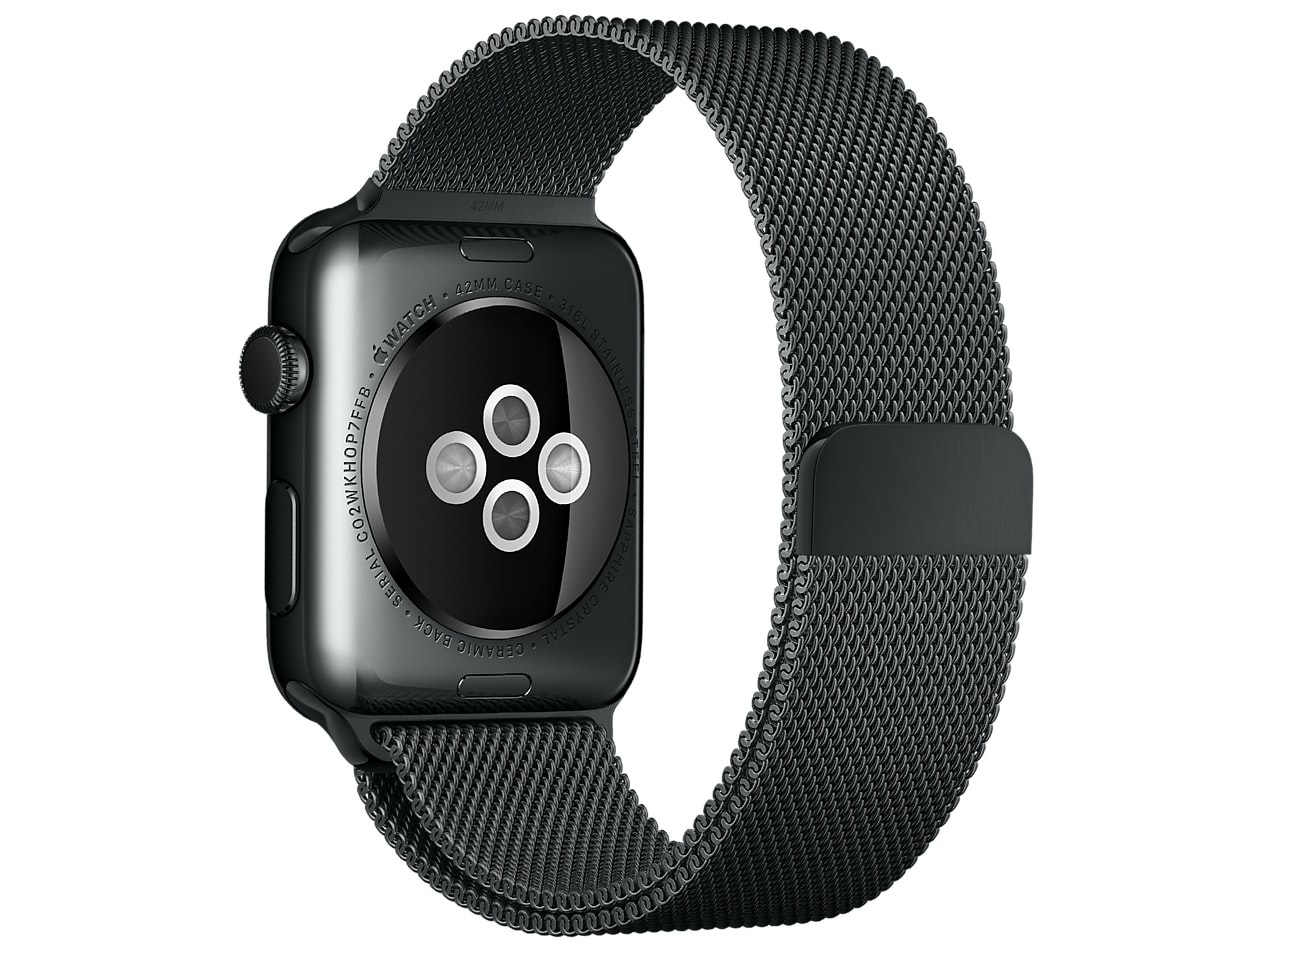 apple watch space black milanese loop Apple Announces New Apple Watch Straps, Drop In Starting Price At 'Let Us Loop You In' Event Apple Announces New Apple Watch Straps, Drop In Starting Price At 'Let Us Loop You In' Event new milanease